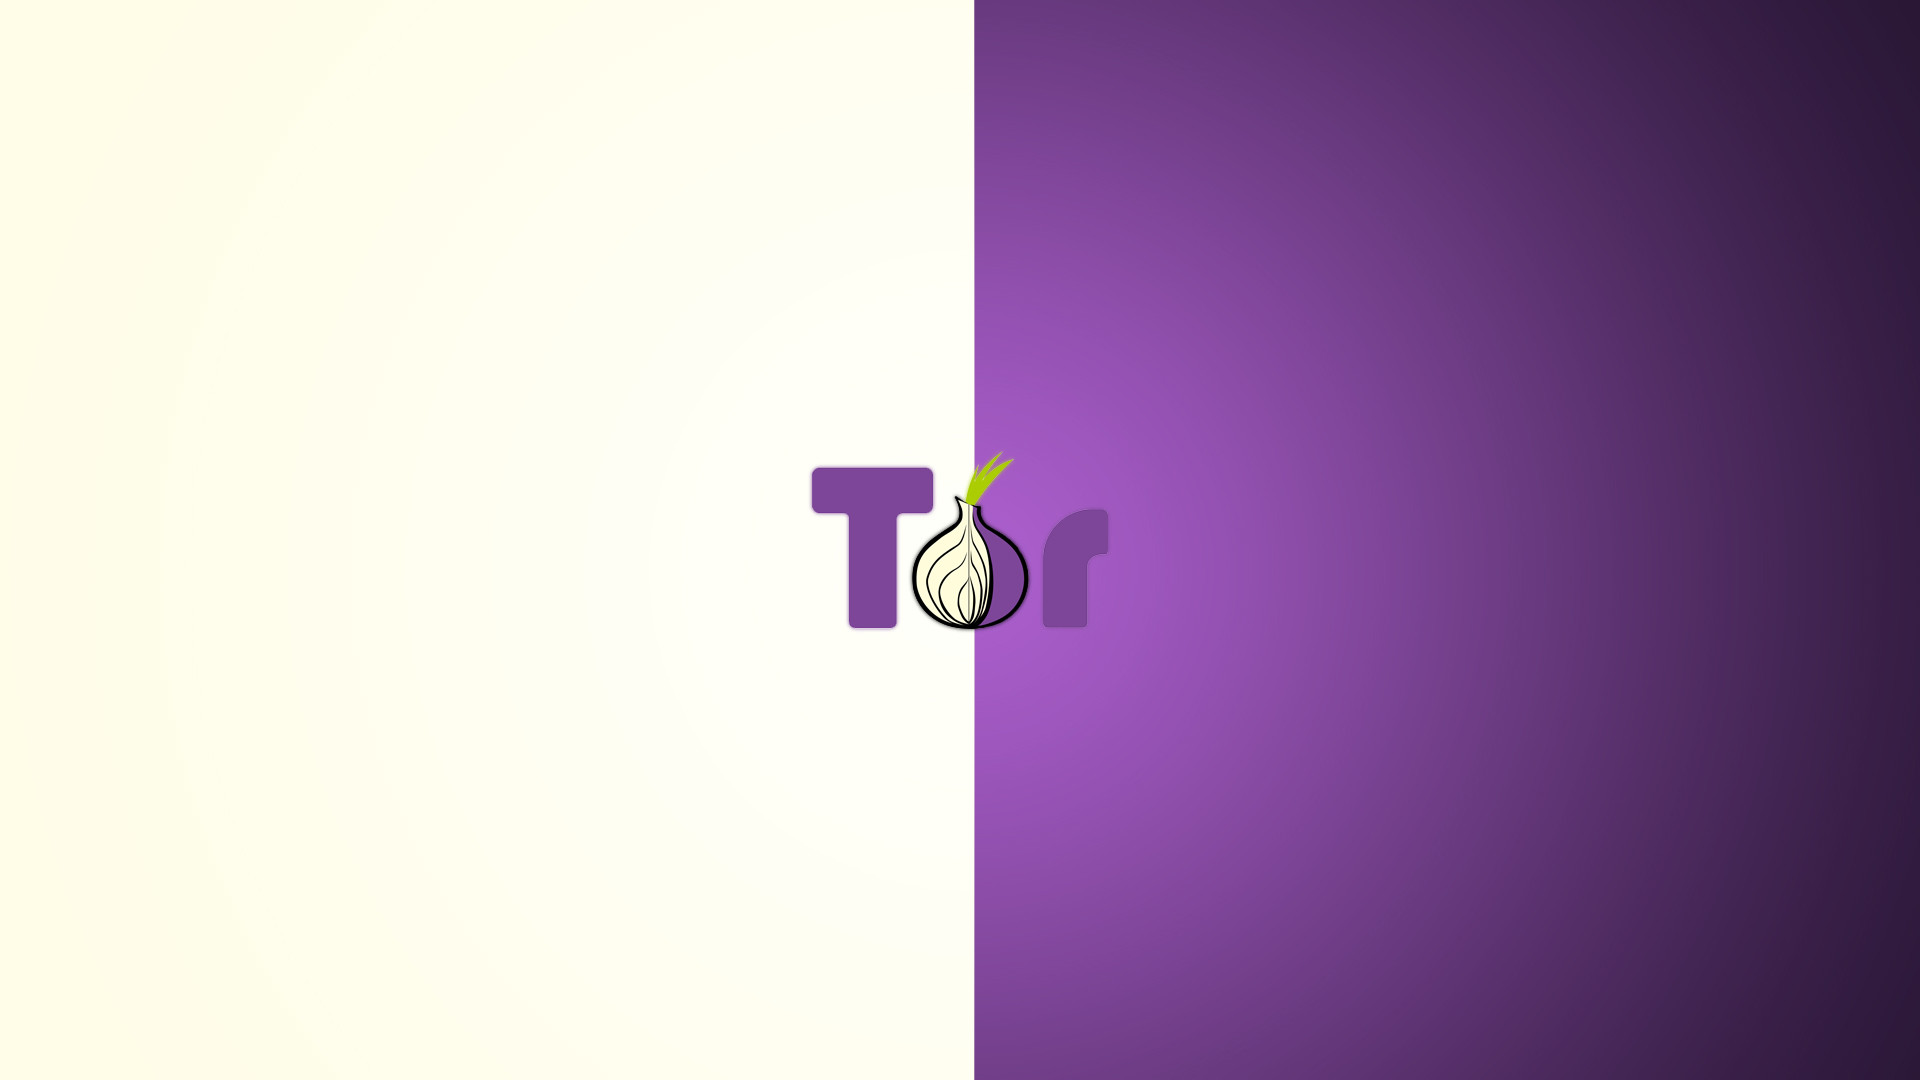 Tor Wallpaper 71 Pictures